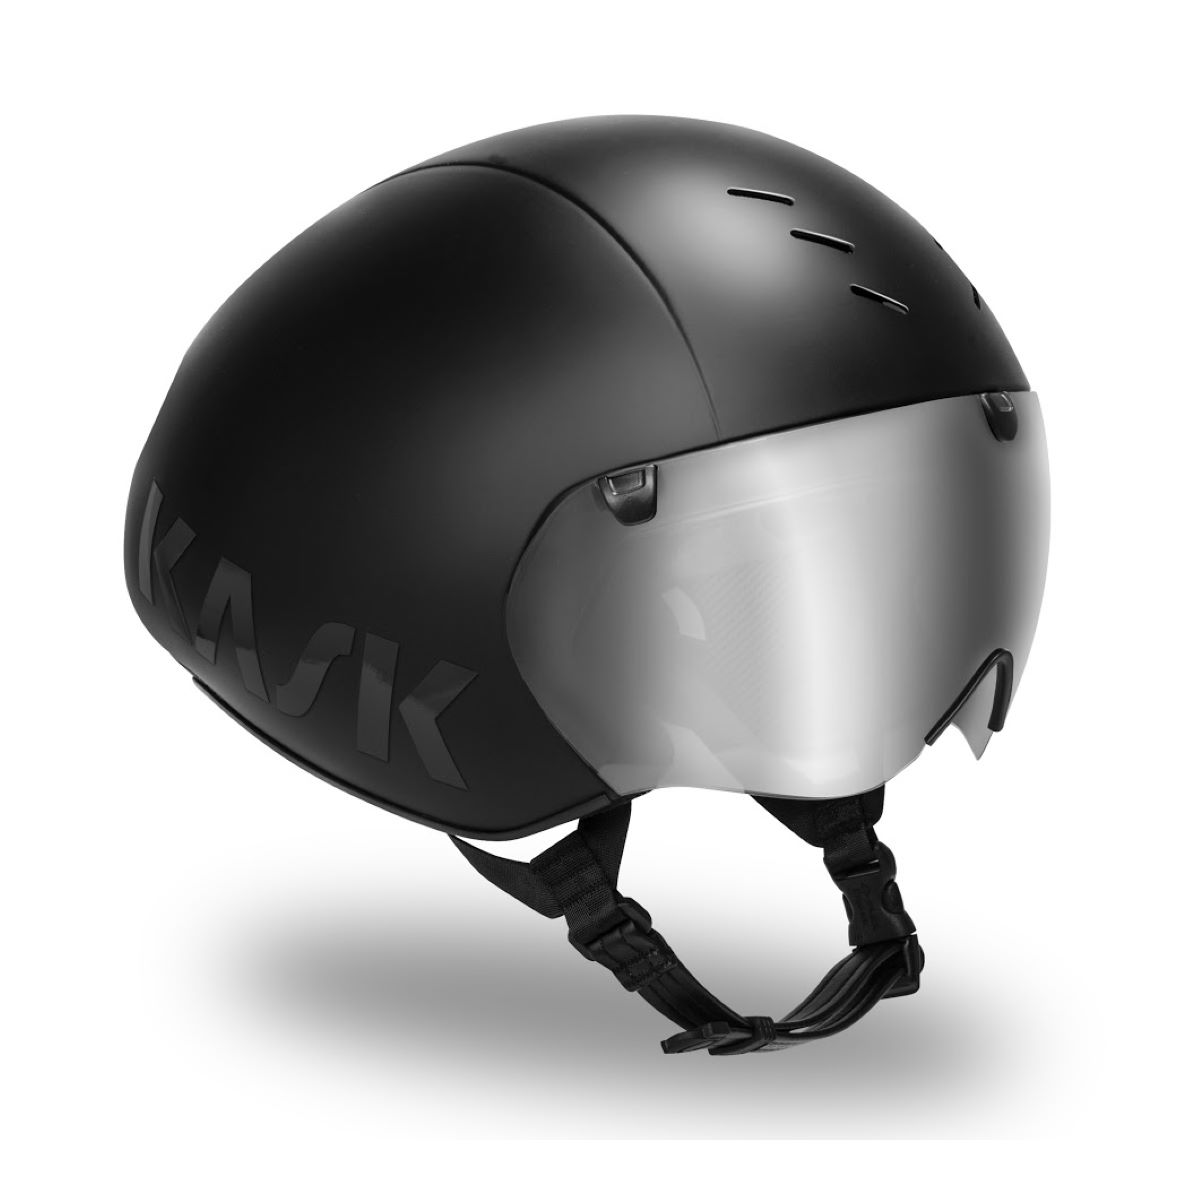 Casque Kask Bambino Pro (finition mate) - Large Noir mat Casques de route